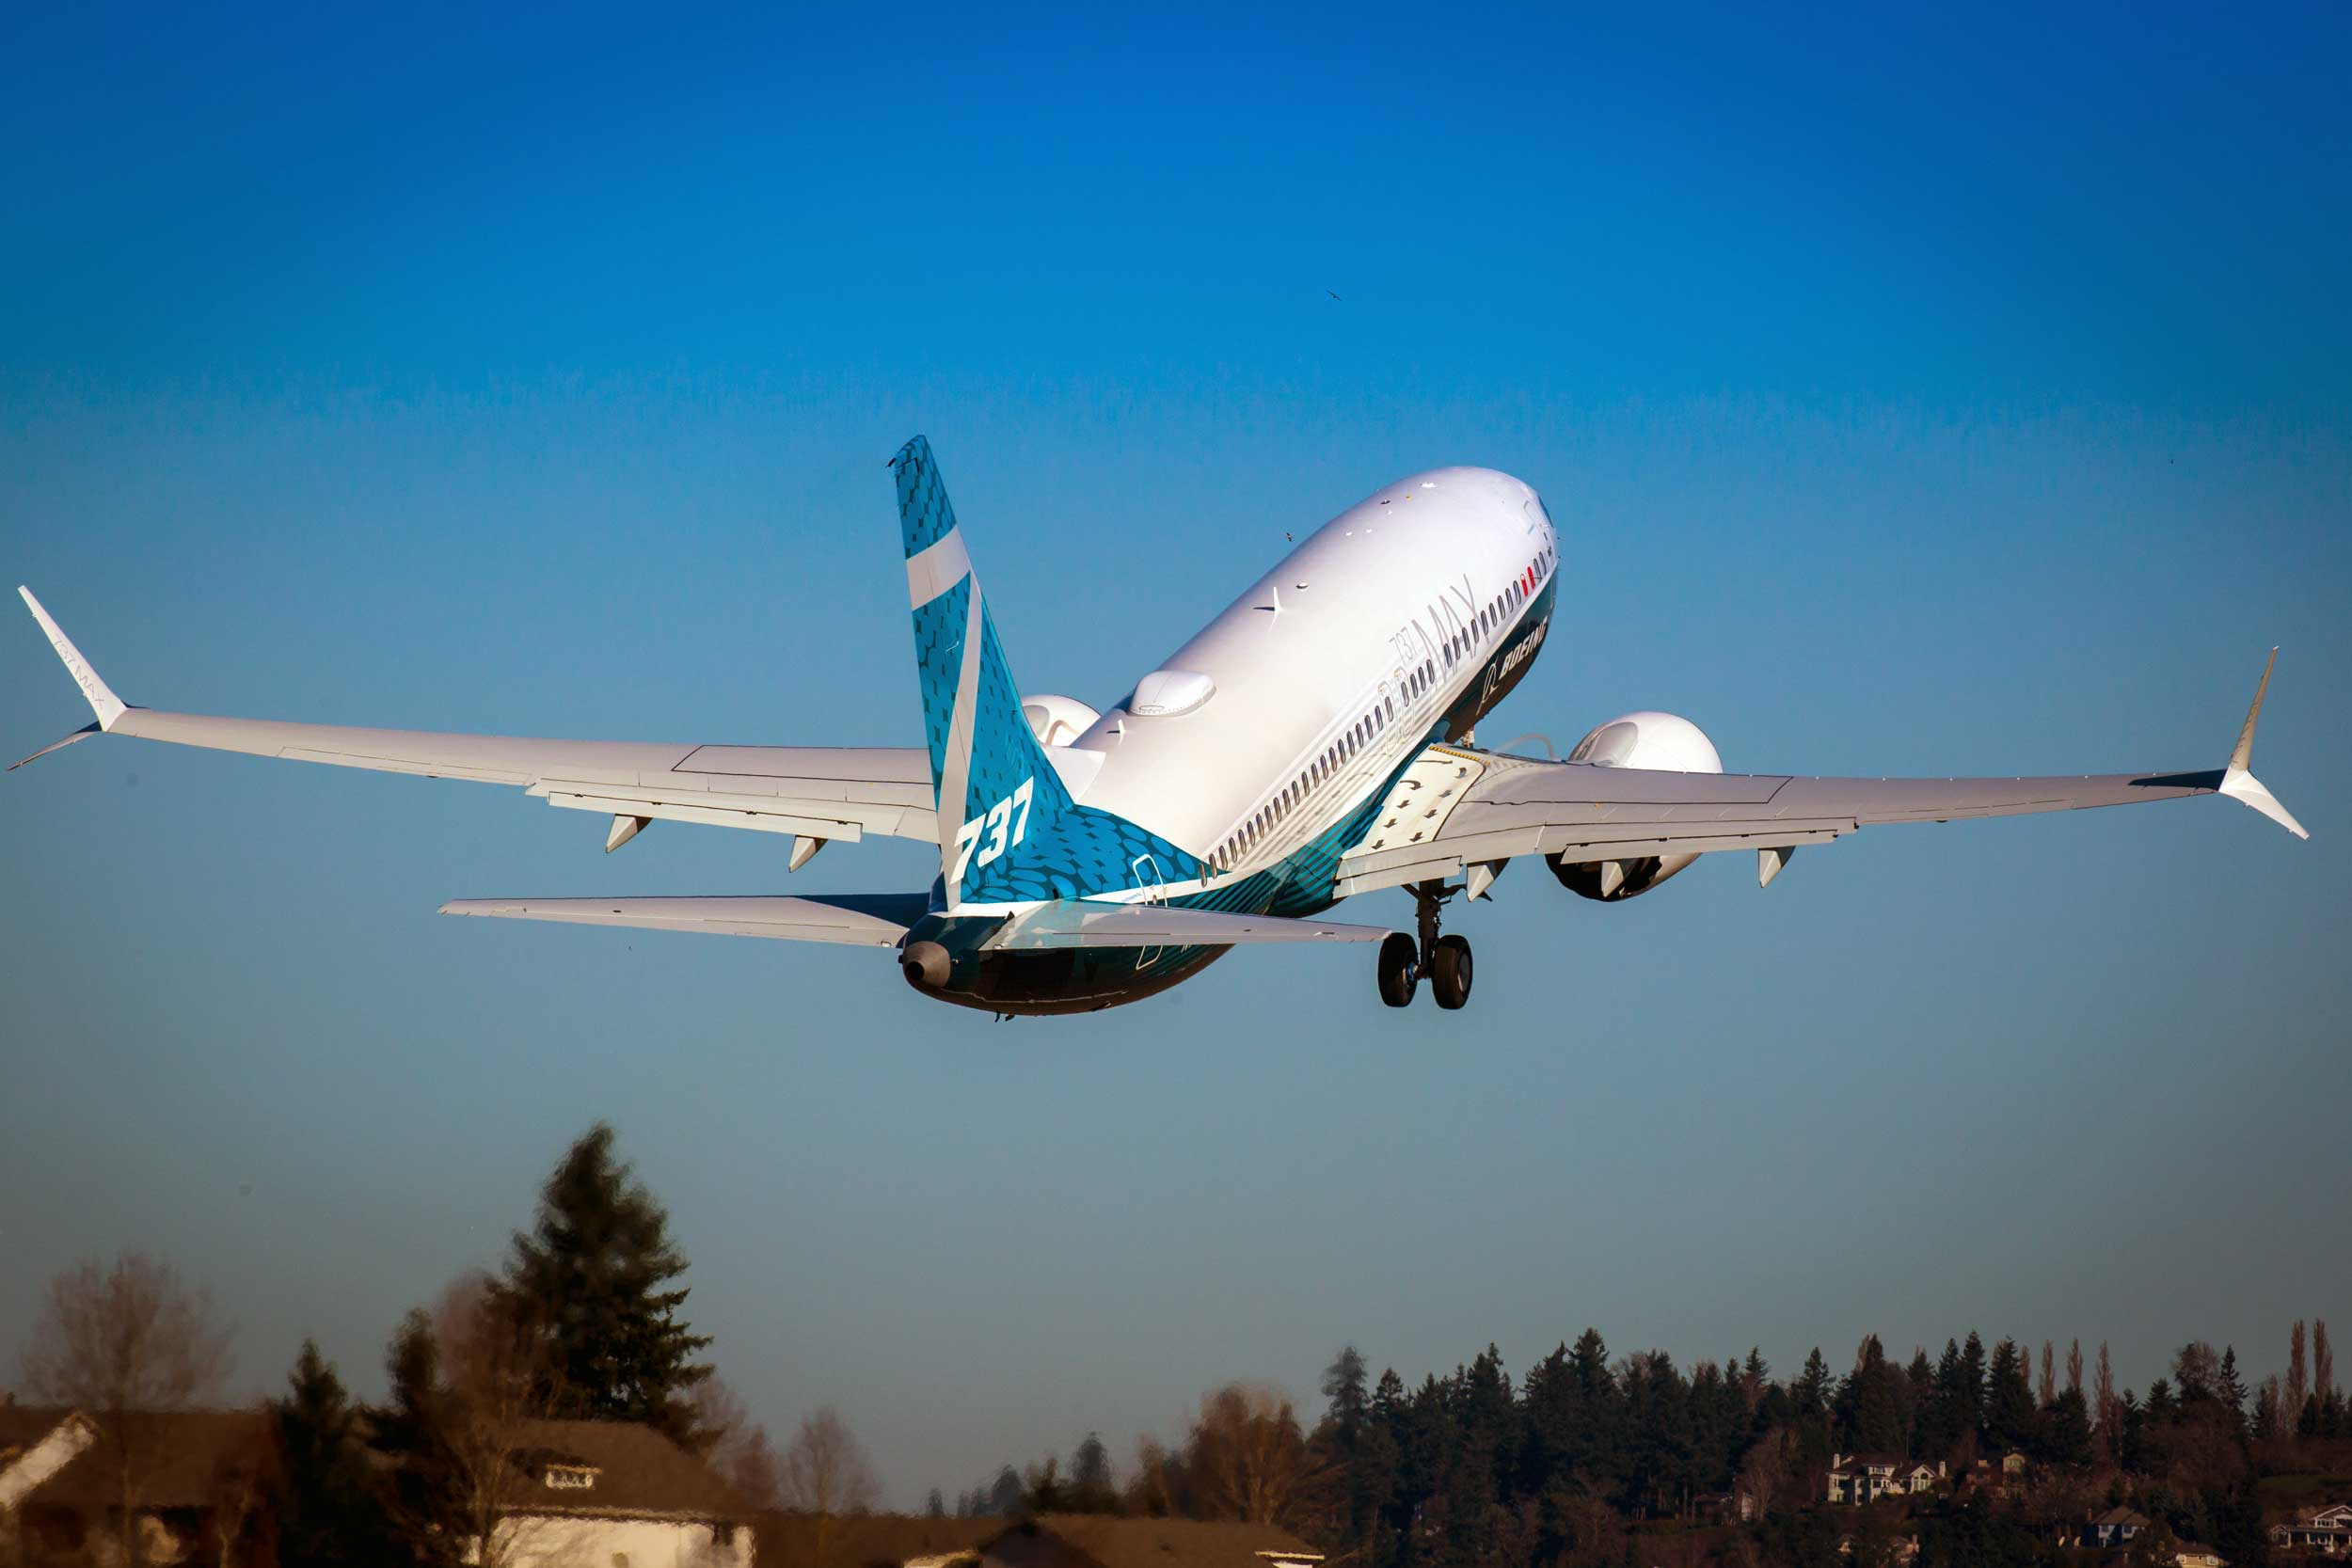 Boeing Pilot and Technician Outlook 2020-2039